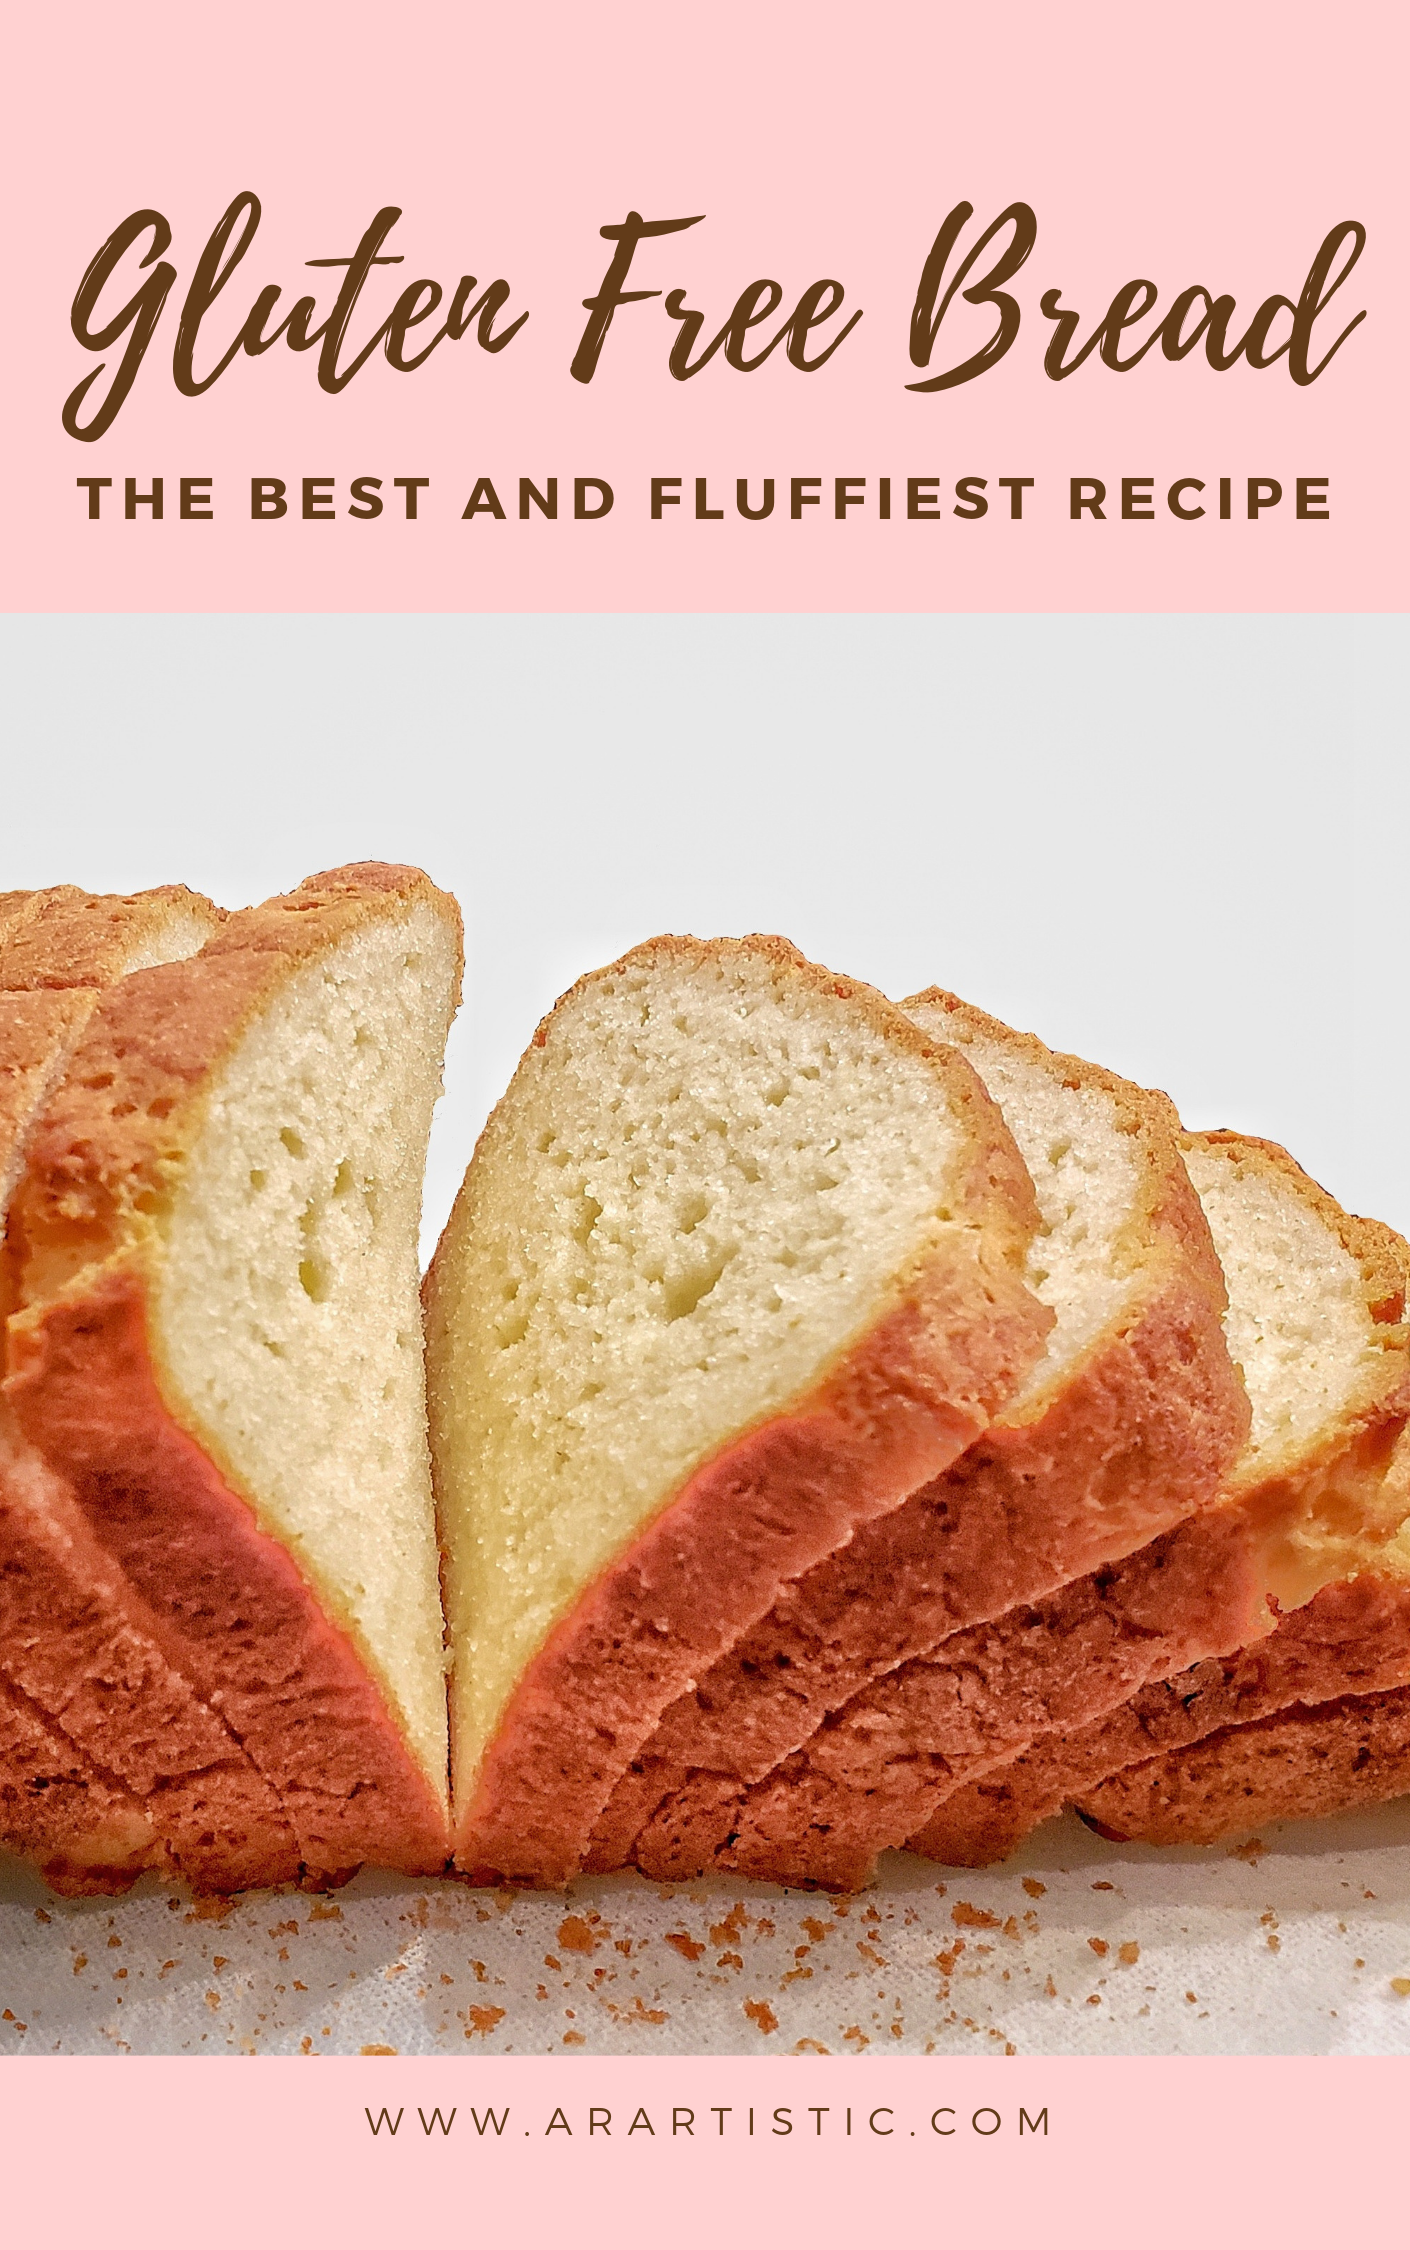 The Best Gluten Free Bread Recipe Beyond The Slice Recipe In 2020 Best Gluten Free Bread Gluten Free Recipes Easy Good Gluten Free Bread Recipe